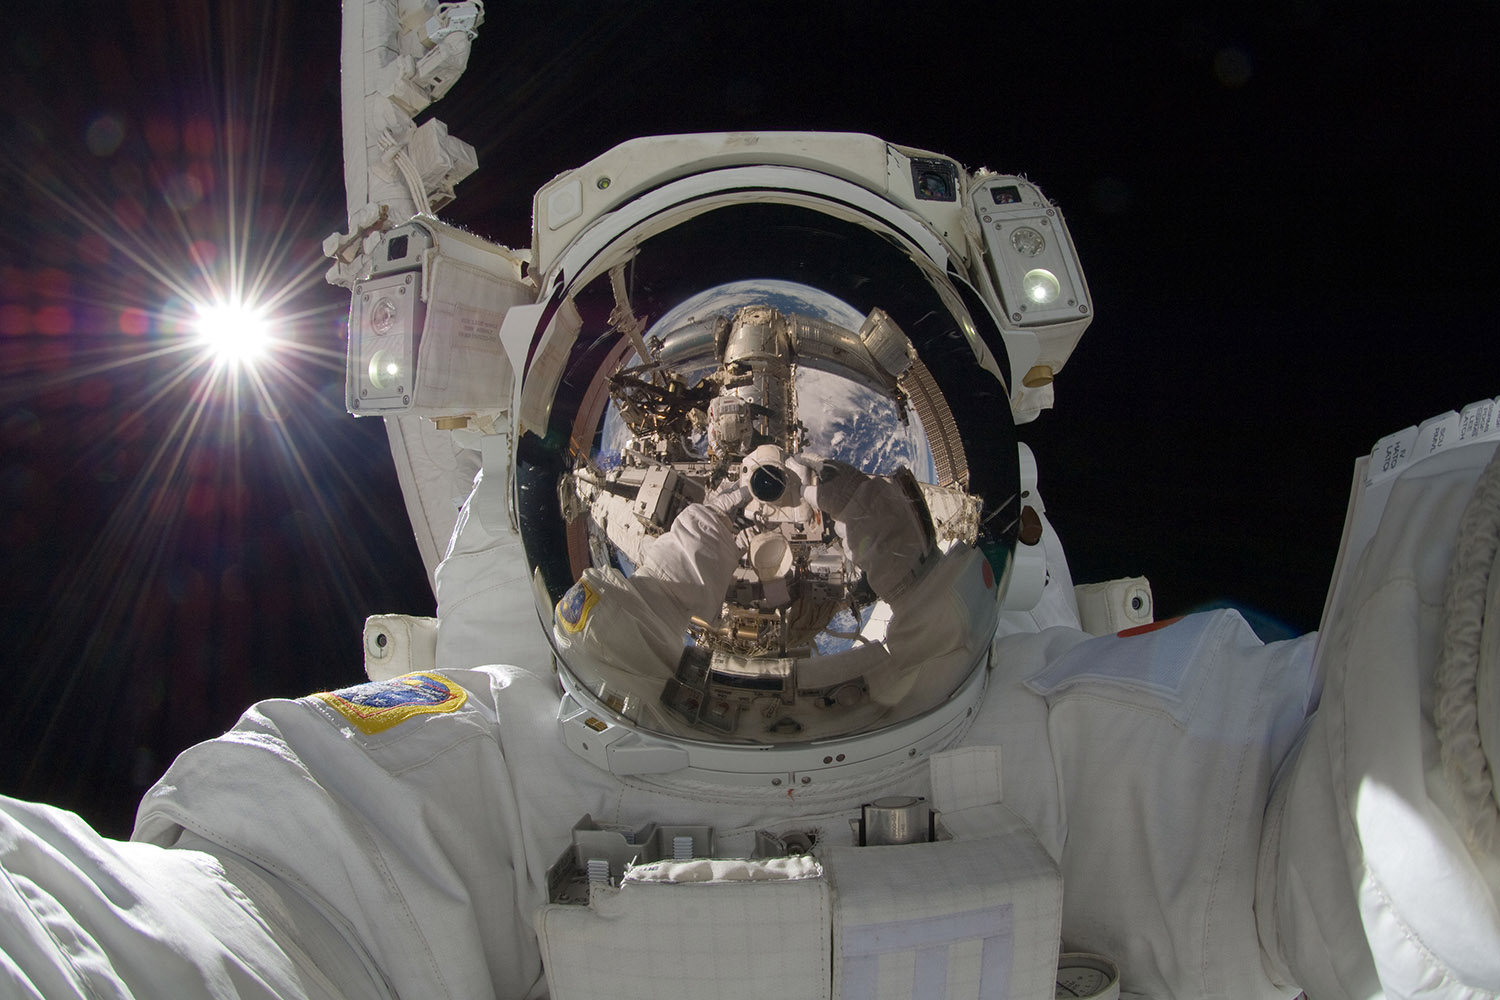 Sept. 5, 2012. In this photo provided by NASA, Japan Aerospace Exploration Agency astronaut Aki Hoshide, Expedition 32 flight engineer, uses a digital still camera to take a photo of his helmet visor during the mission's third session of extravehicular activity (EVA).